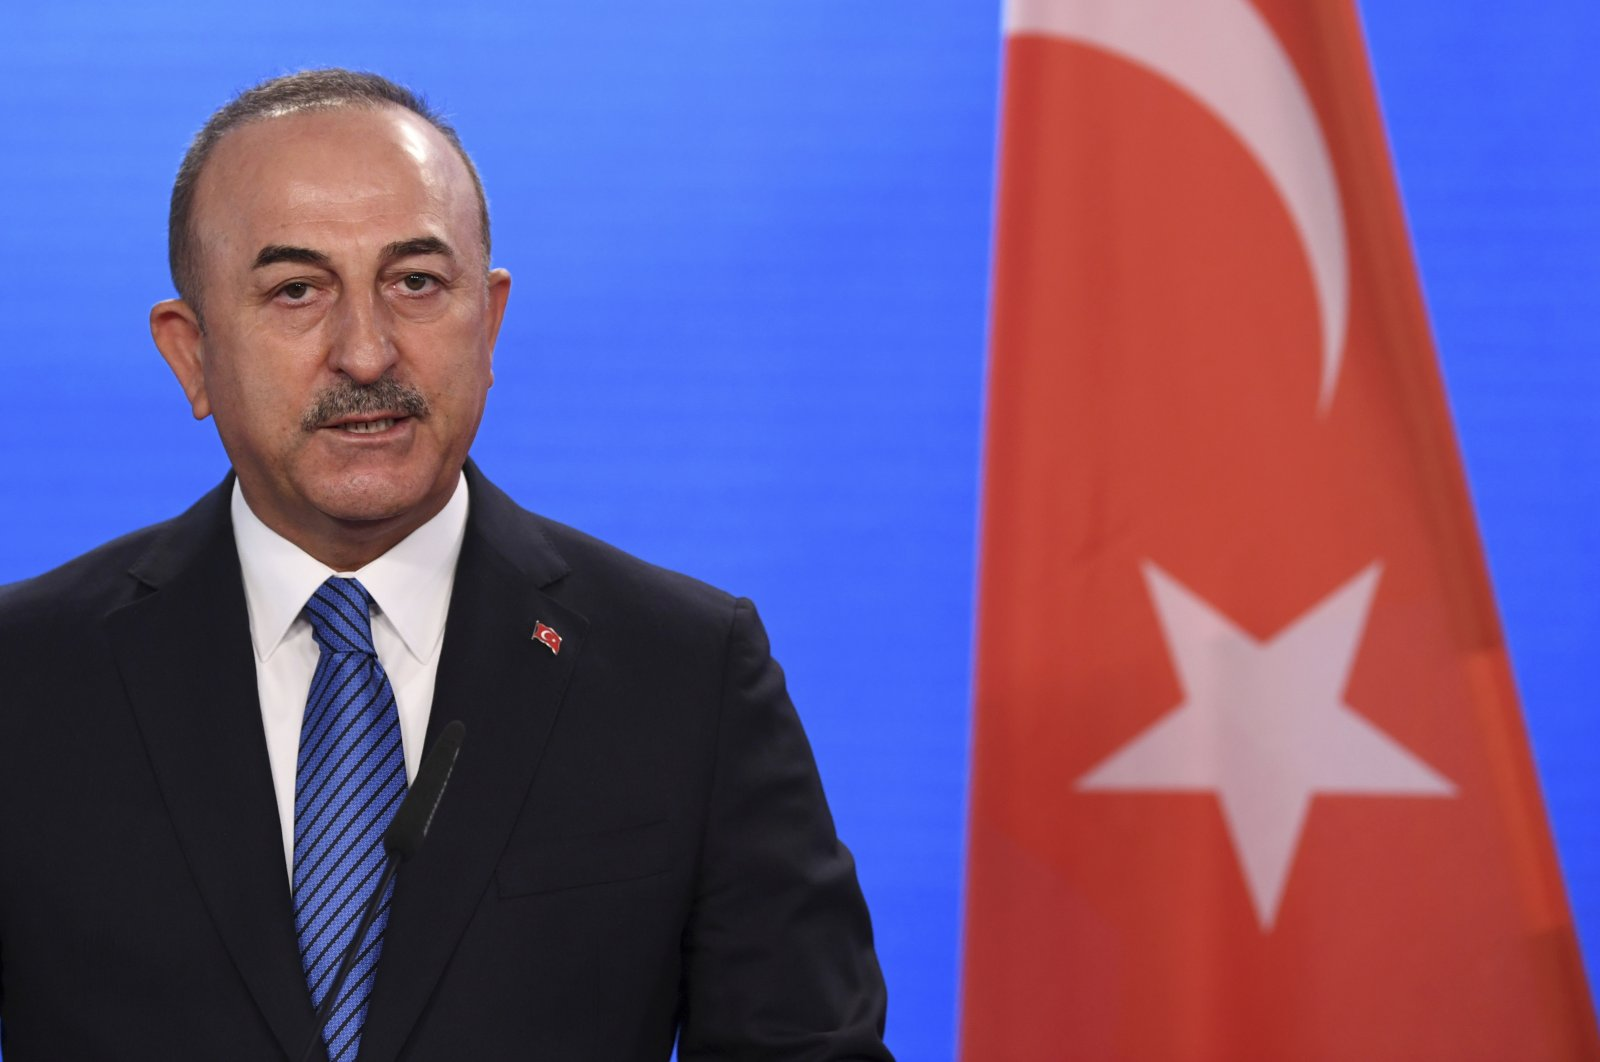 Foreign Minister Mevlüt Çavuşoğlu gives a statement to the media following a meeting with German Foreign Minister Heiko Maas at the foreign ministry in Berlin, Germany, May 6, 2021. (AP File Photo)